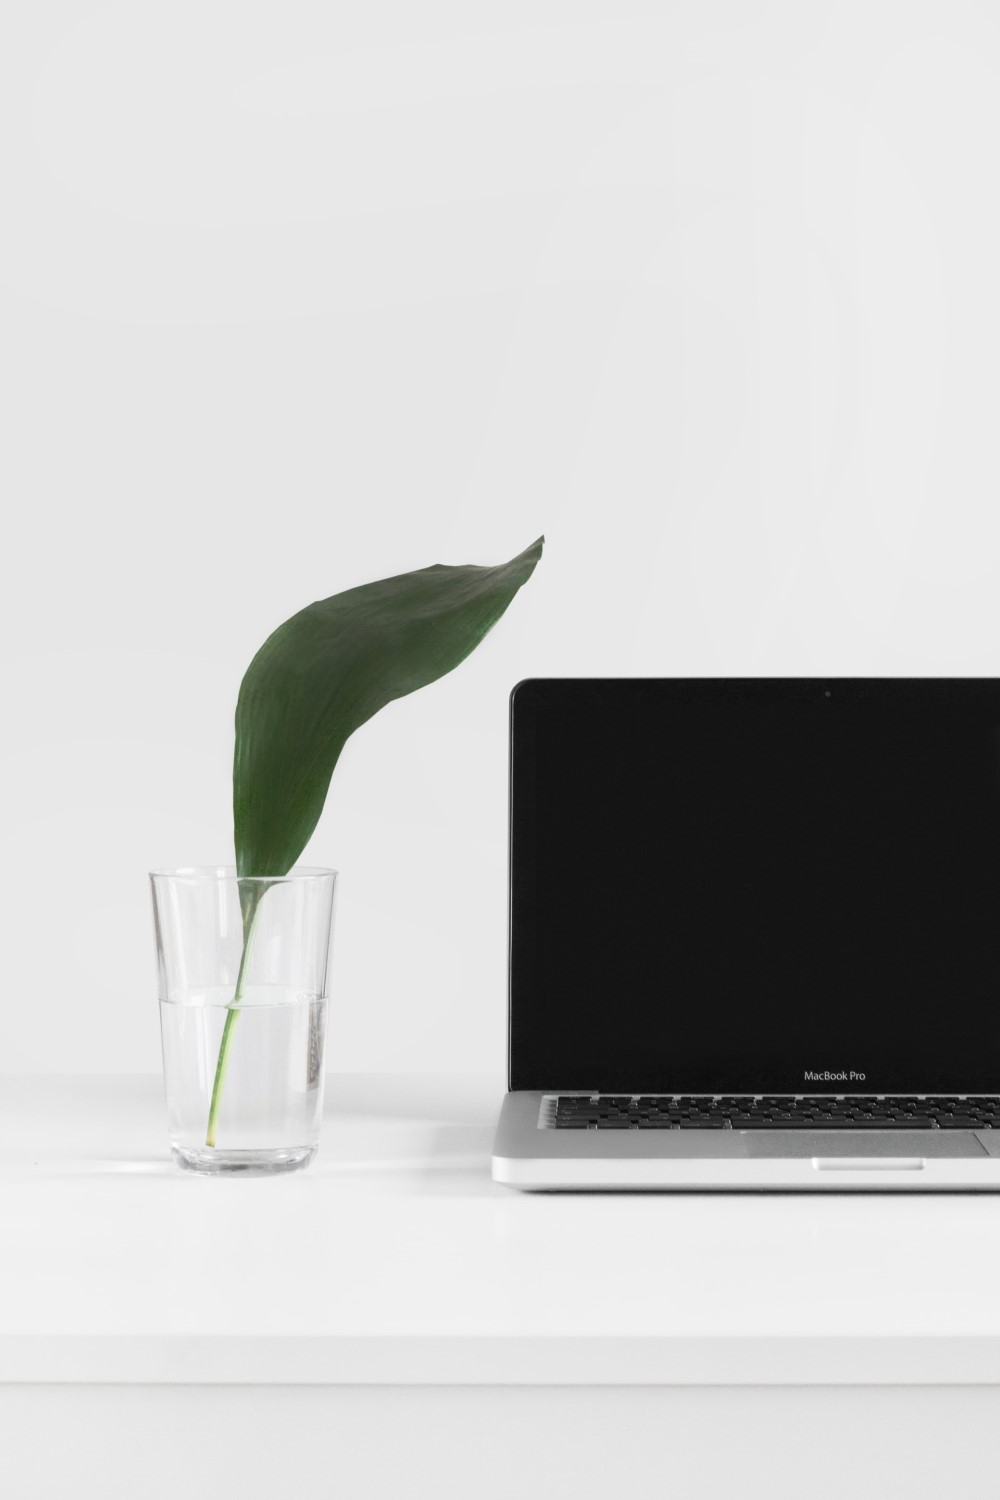 leaf next to computer